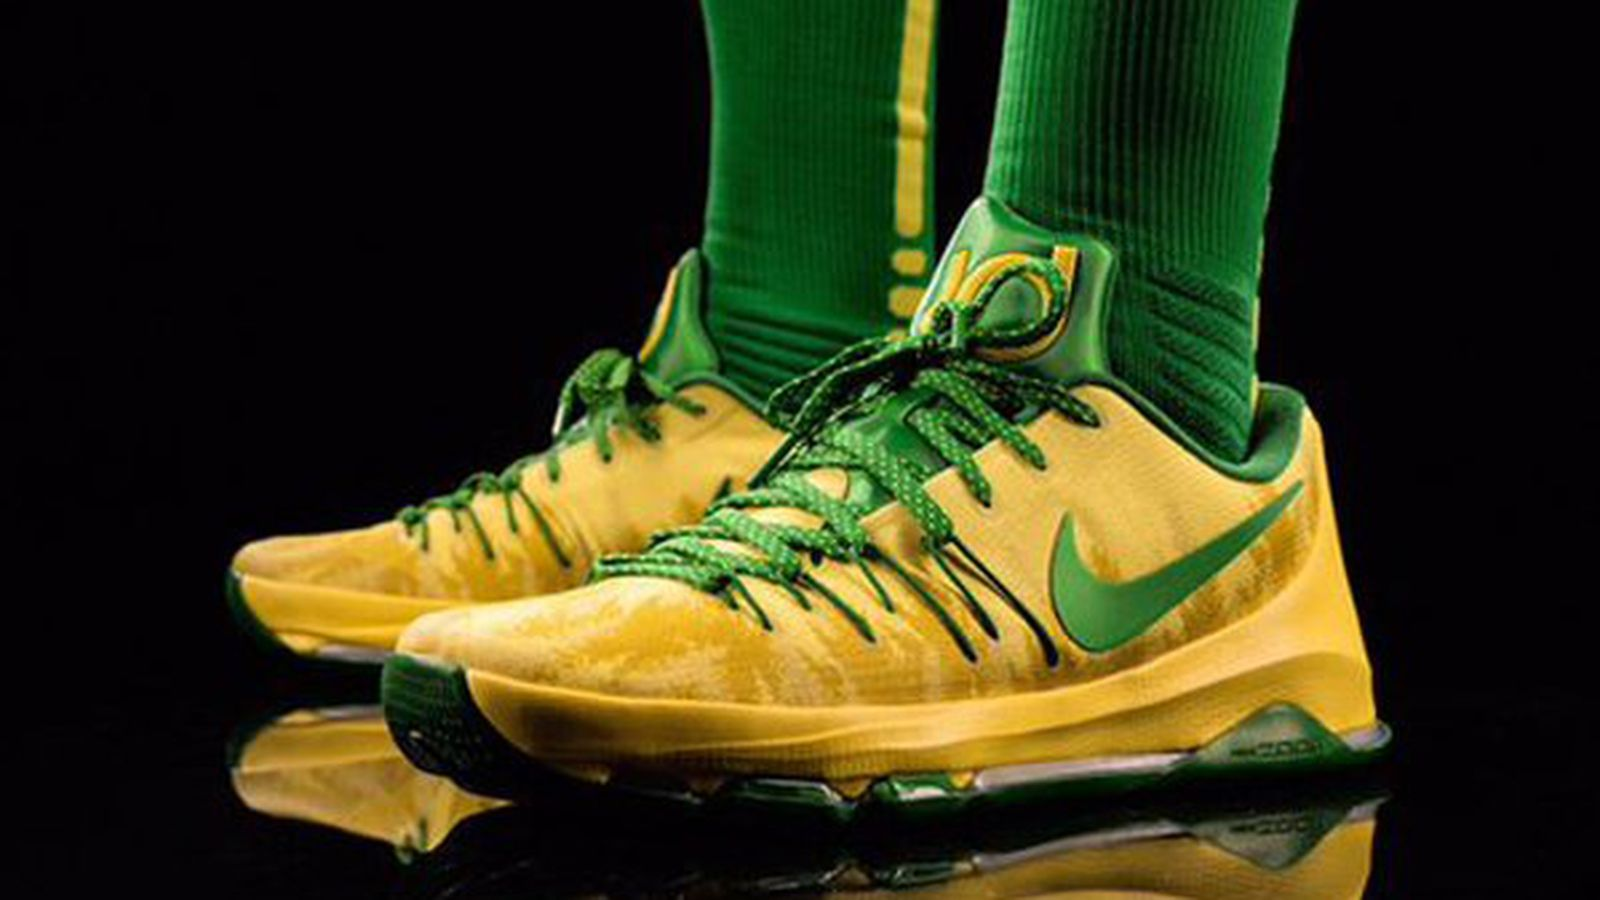 Baylor Tennis Shoes